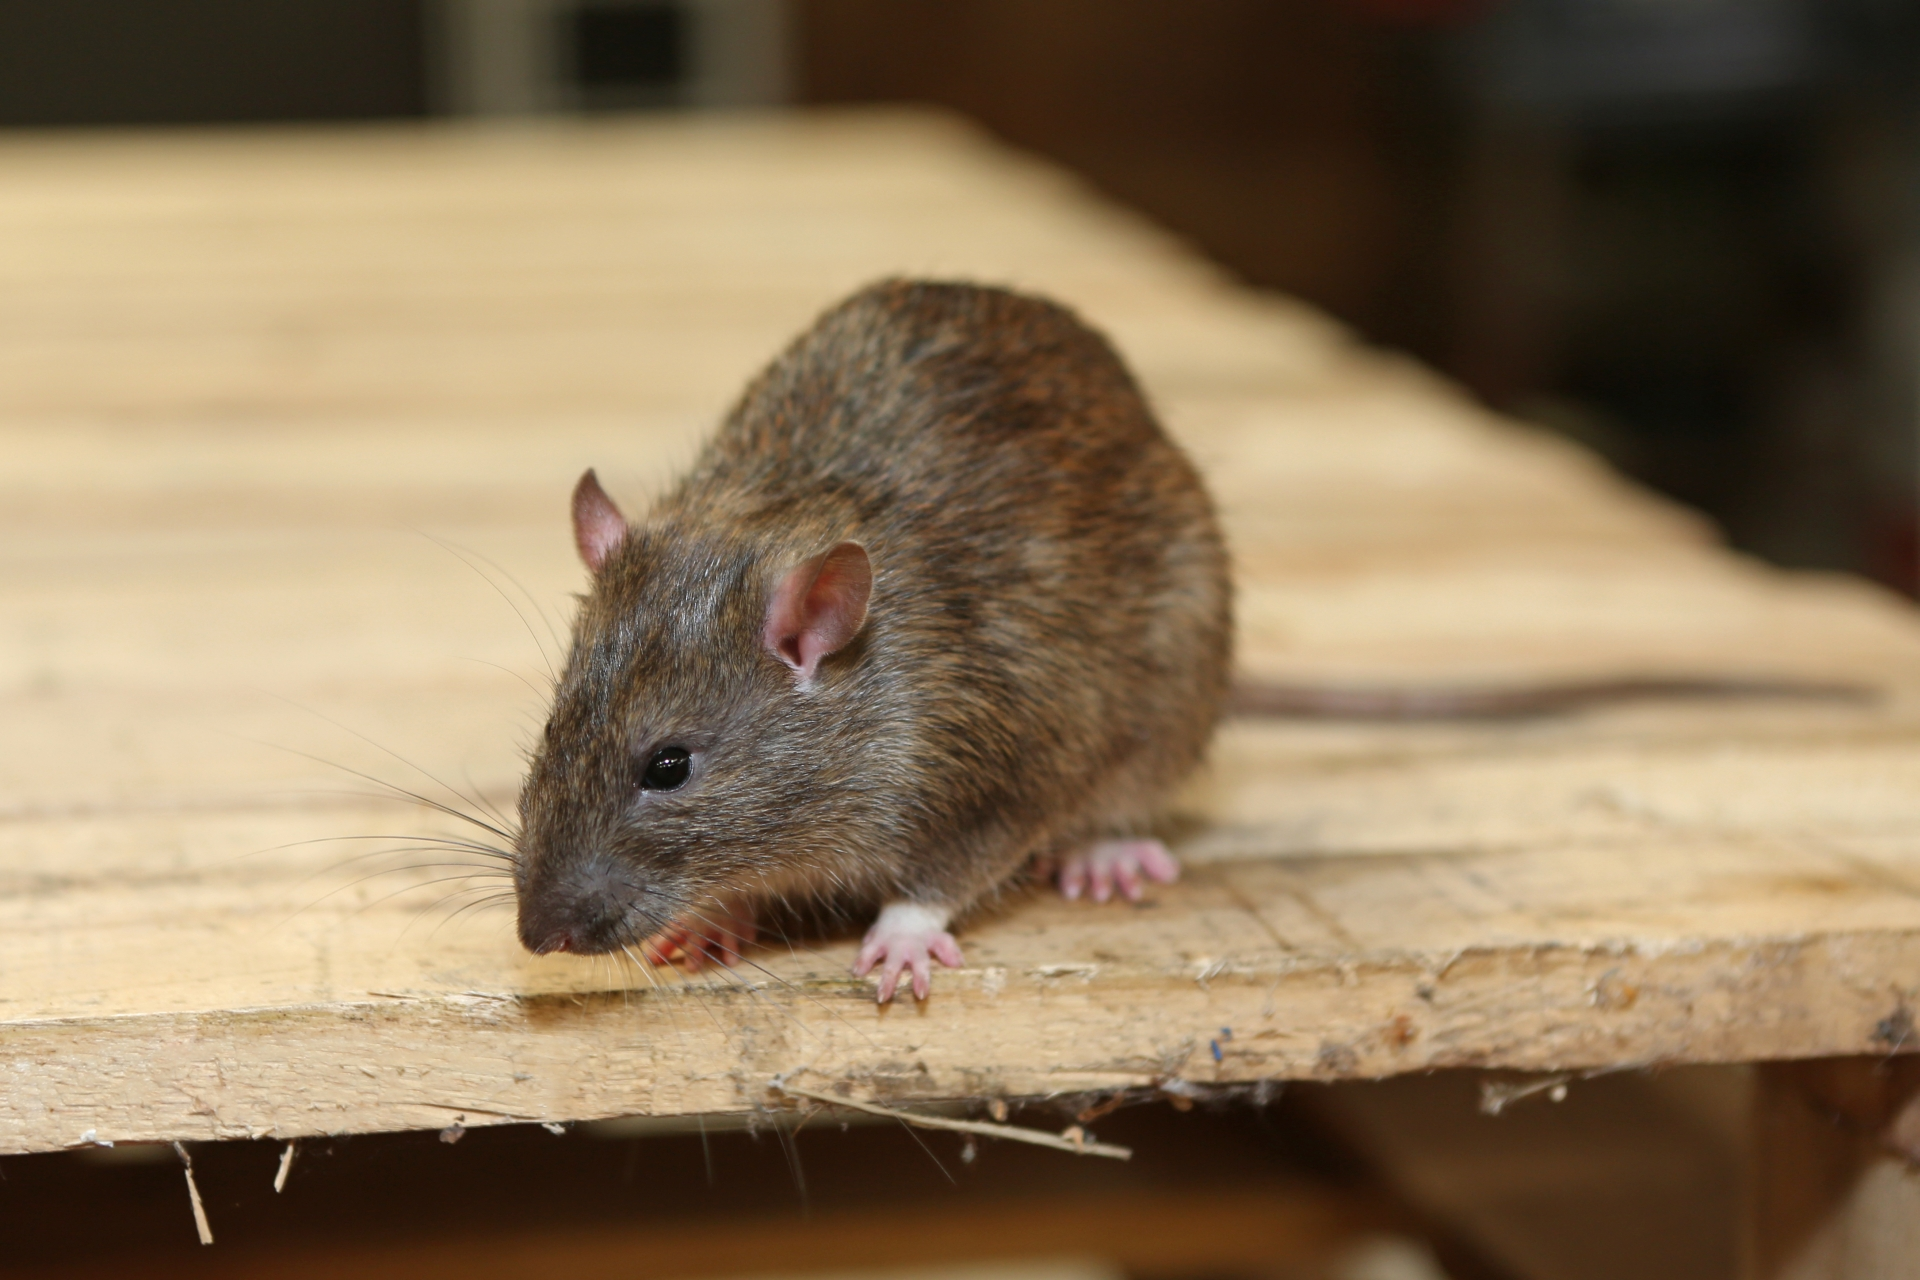 Rat Infestation, Pest Control in Chingford, Highams Park, E4. Call Now 020 8166 9746